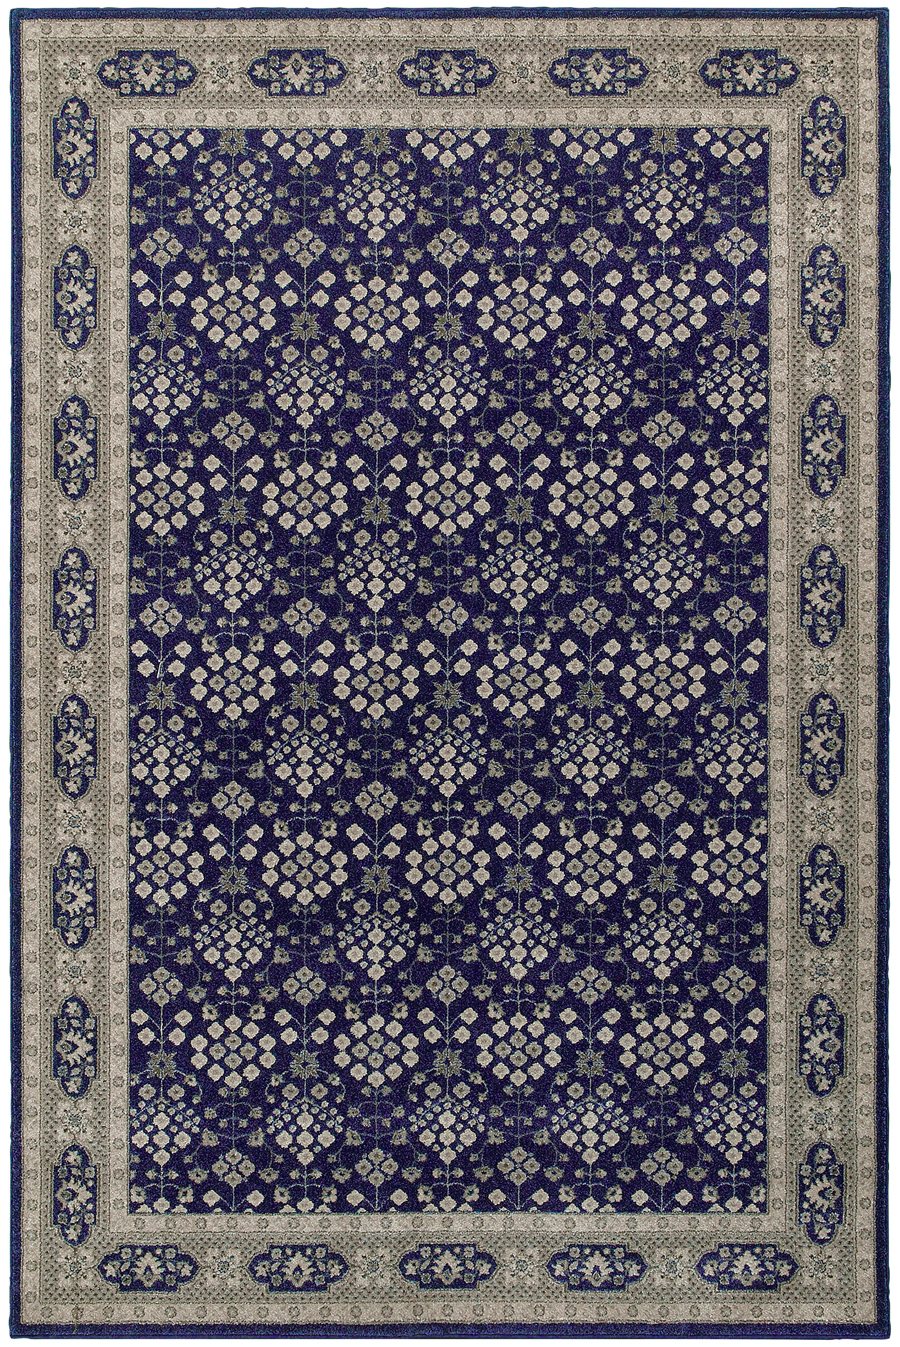 Oriental Weavers Sphinx Richmond 119B3 Rug